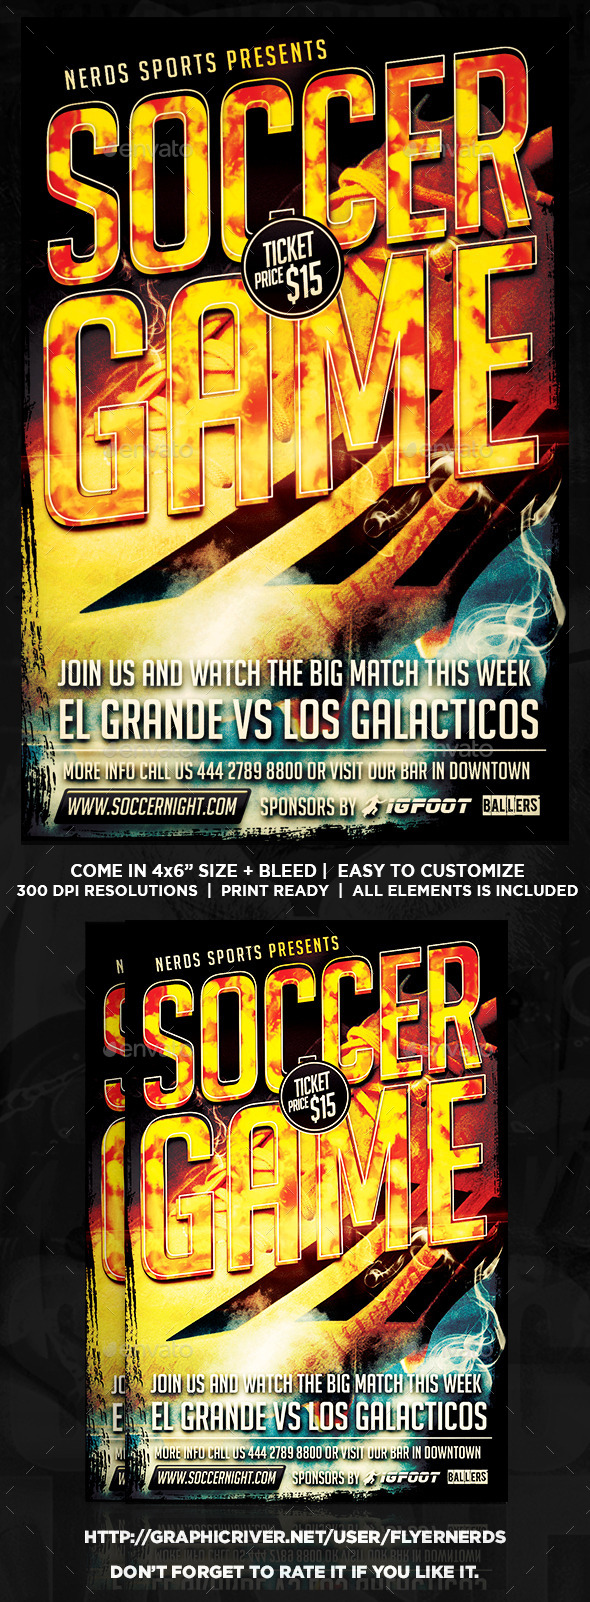 GraphicRiver Soccer Game 2K15 Sports Flyer 9947935